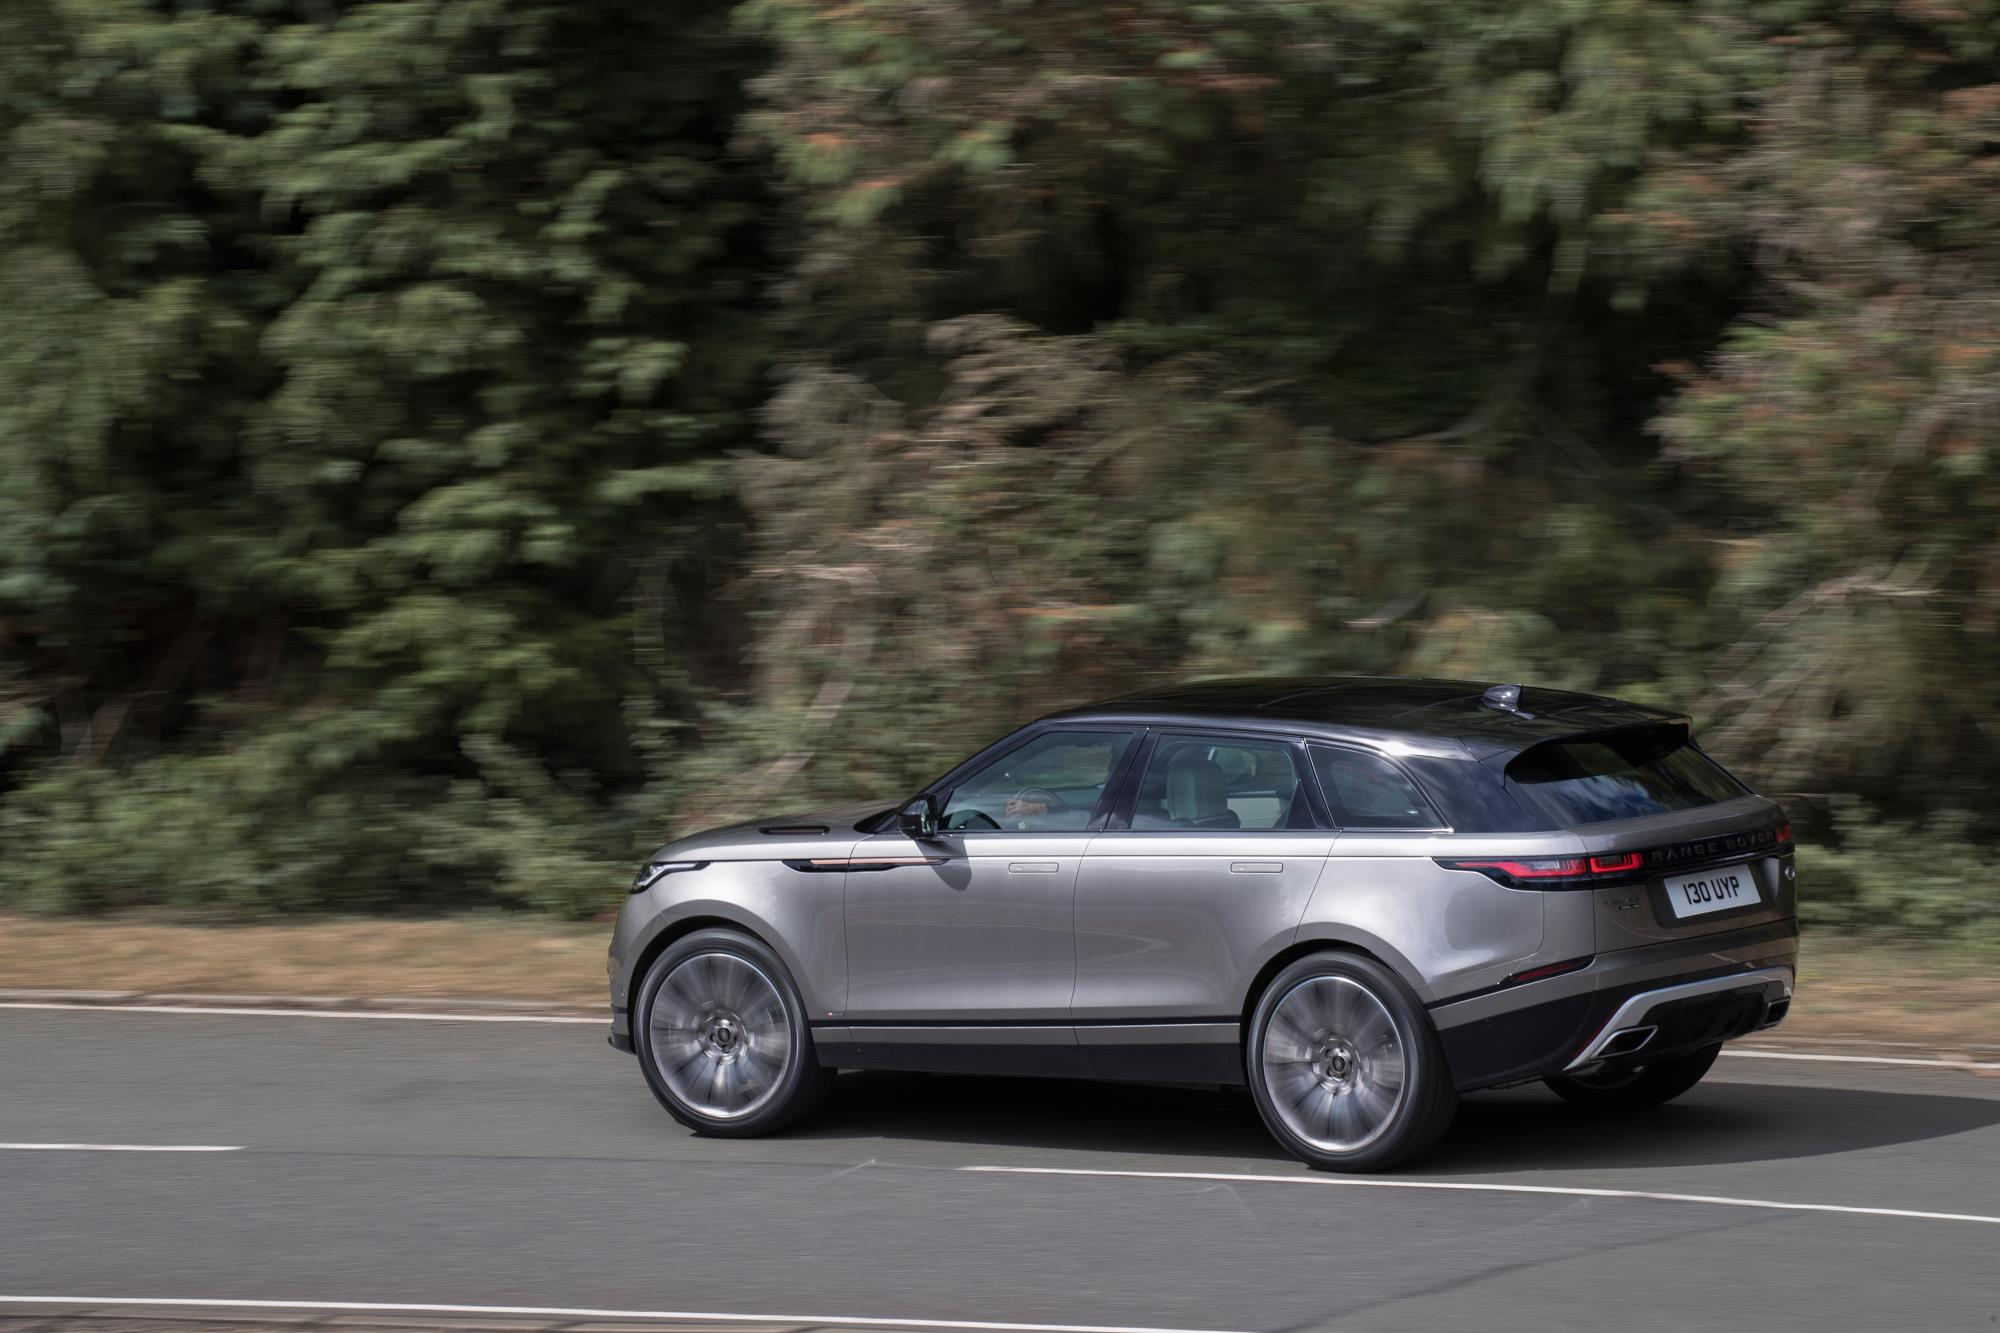 """2020 Road Rover Electric SUV Could Be An """"Allroad-Style ..."""